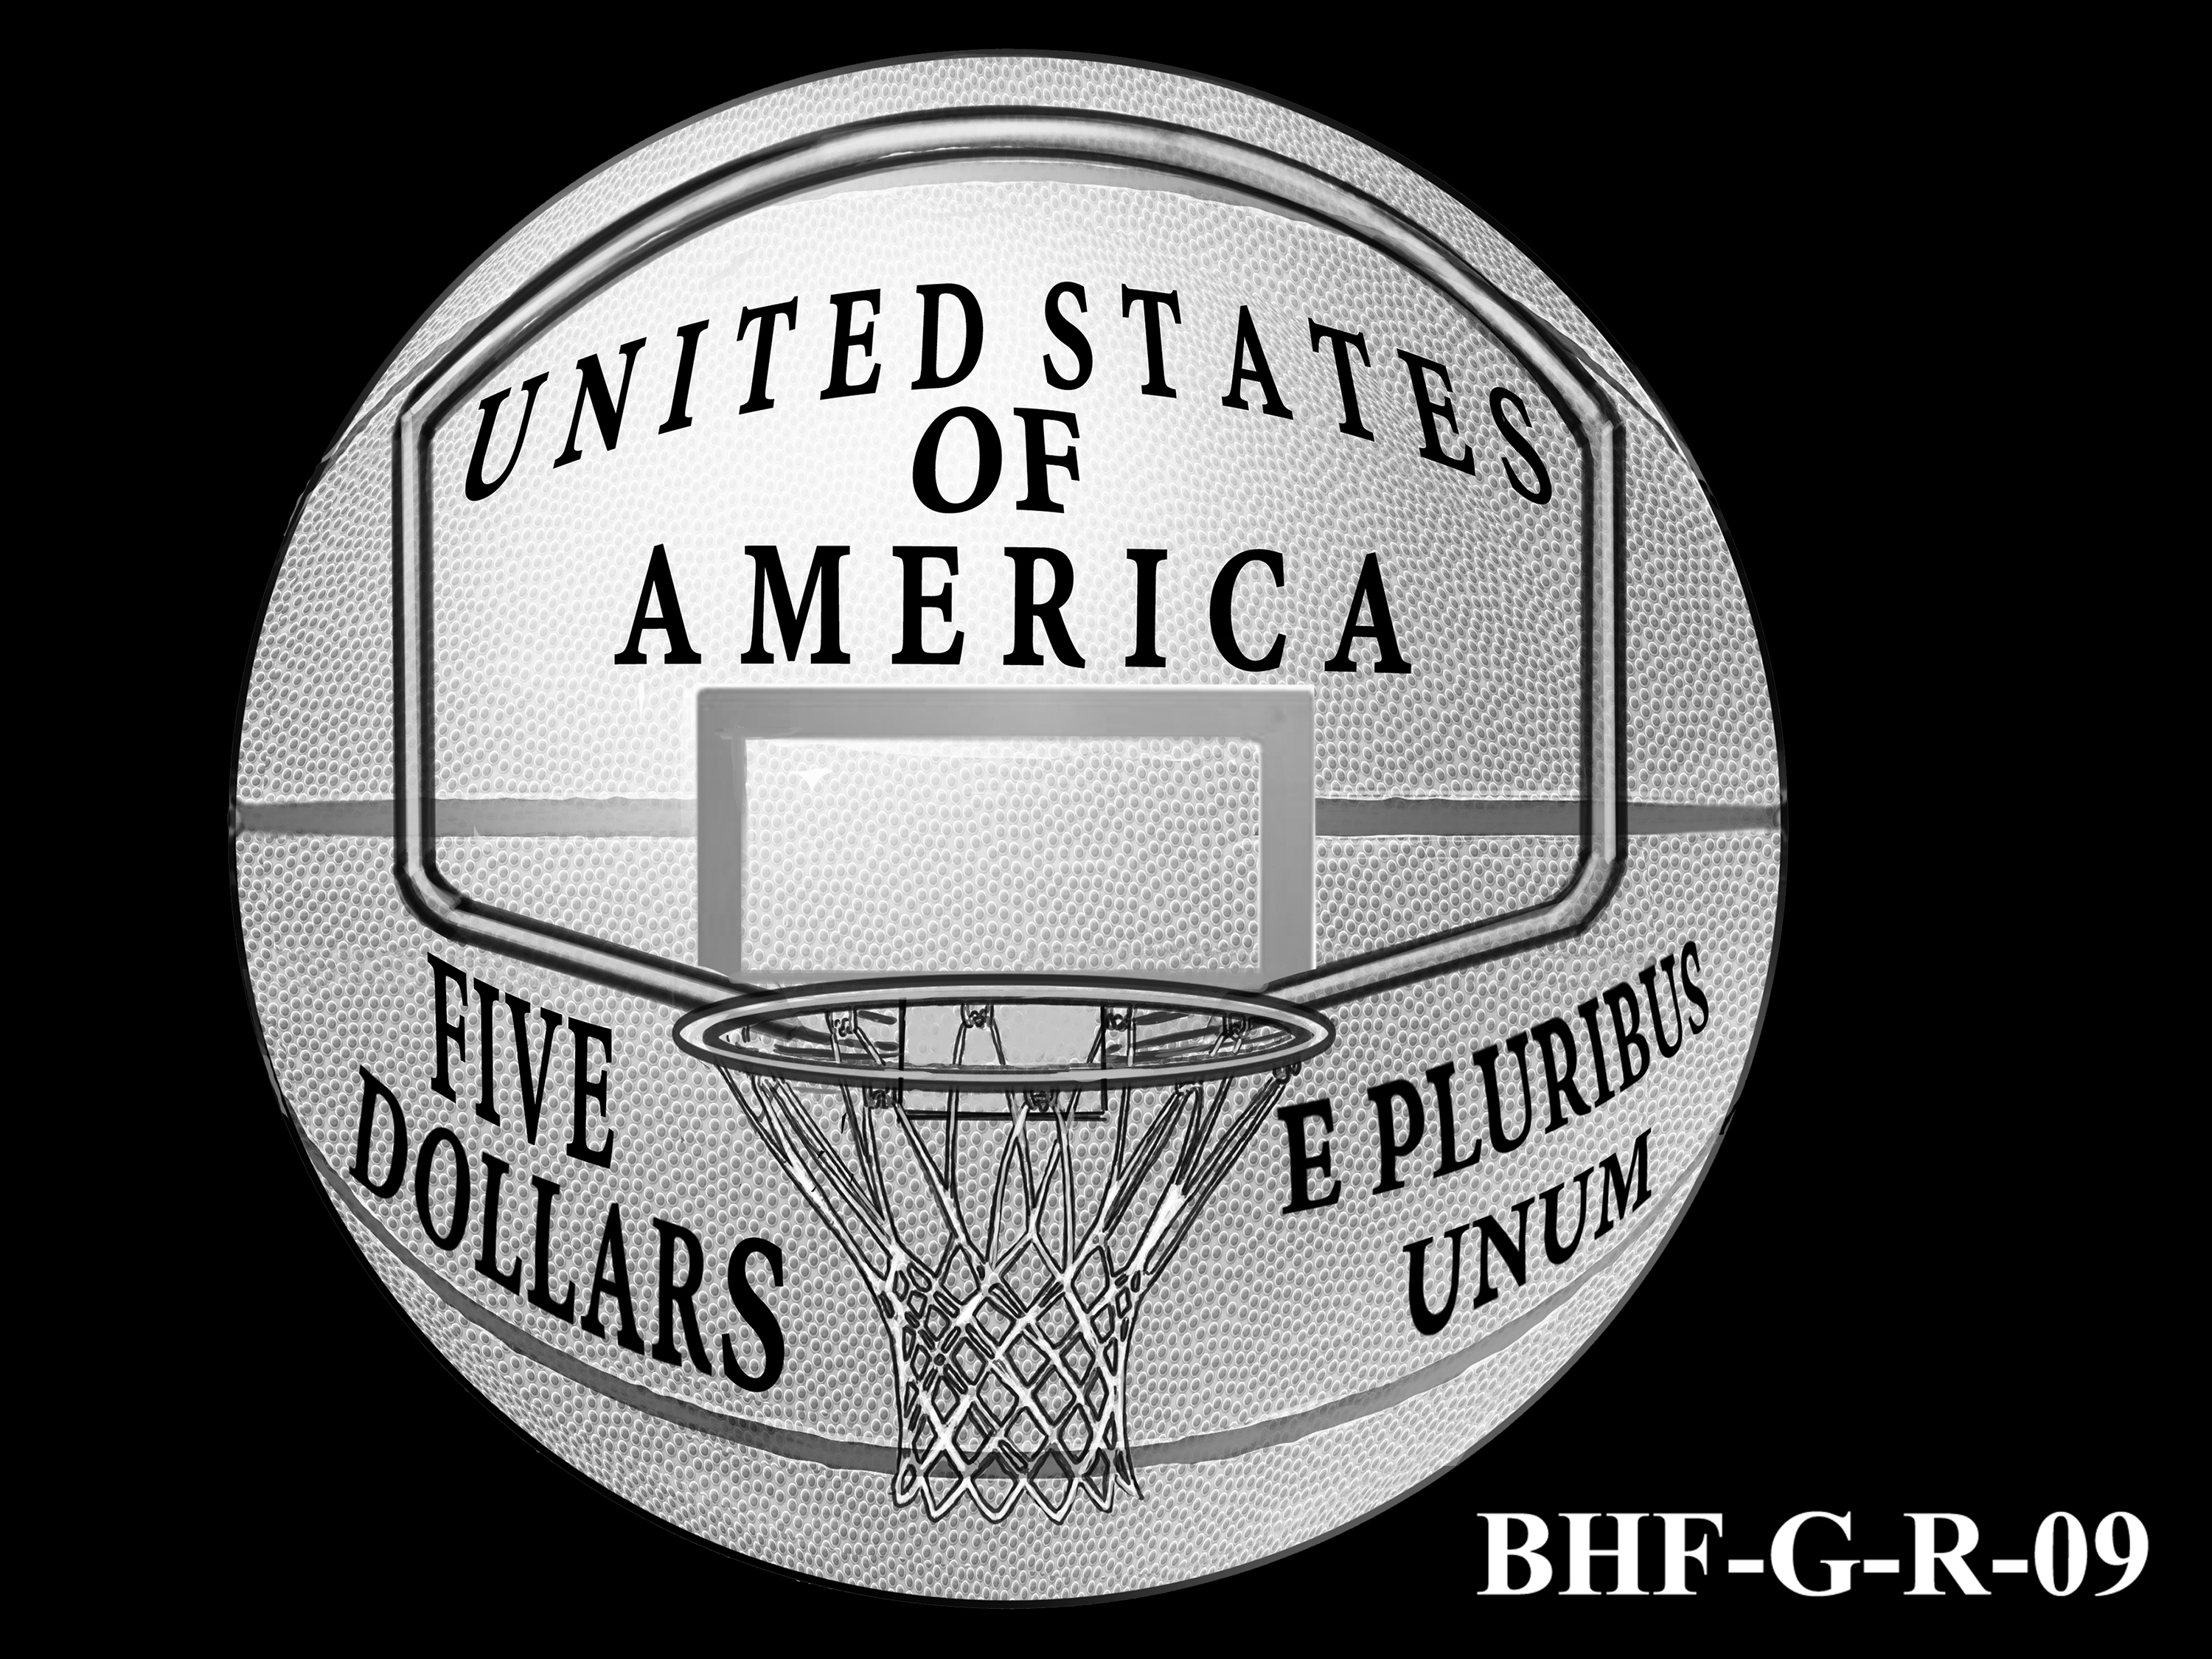 BHF-G-R-09 -- 2020 Basketball Hall of Fame Commemorative Coin Program - Gold Reverse